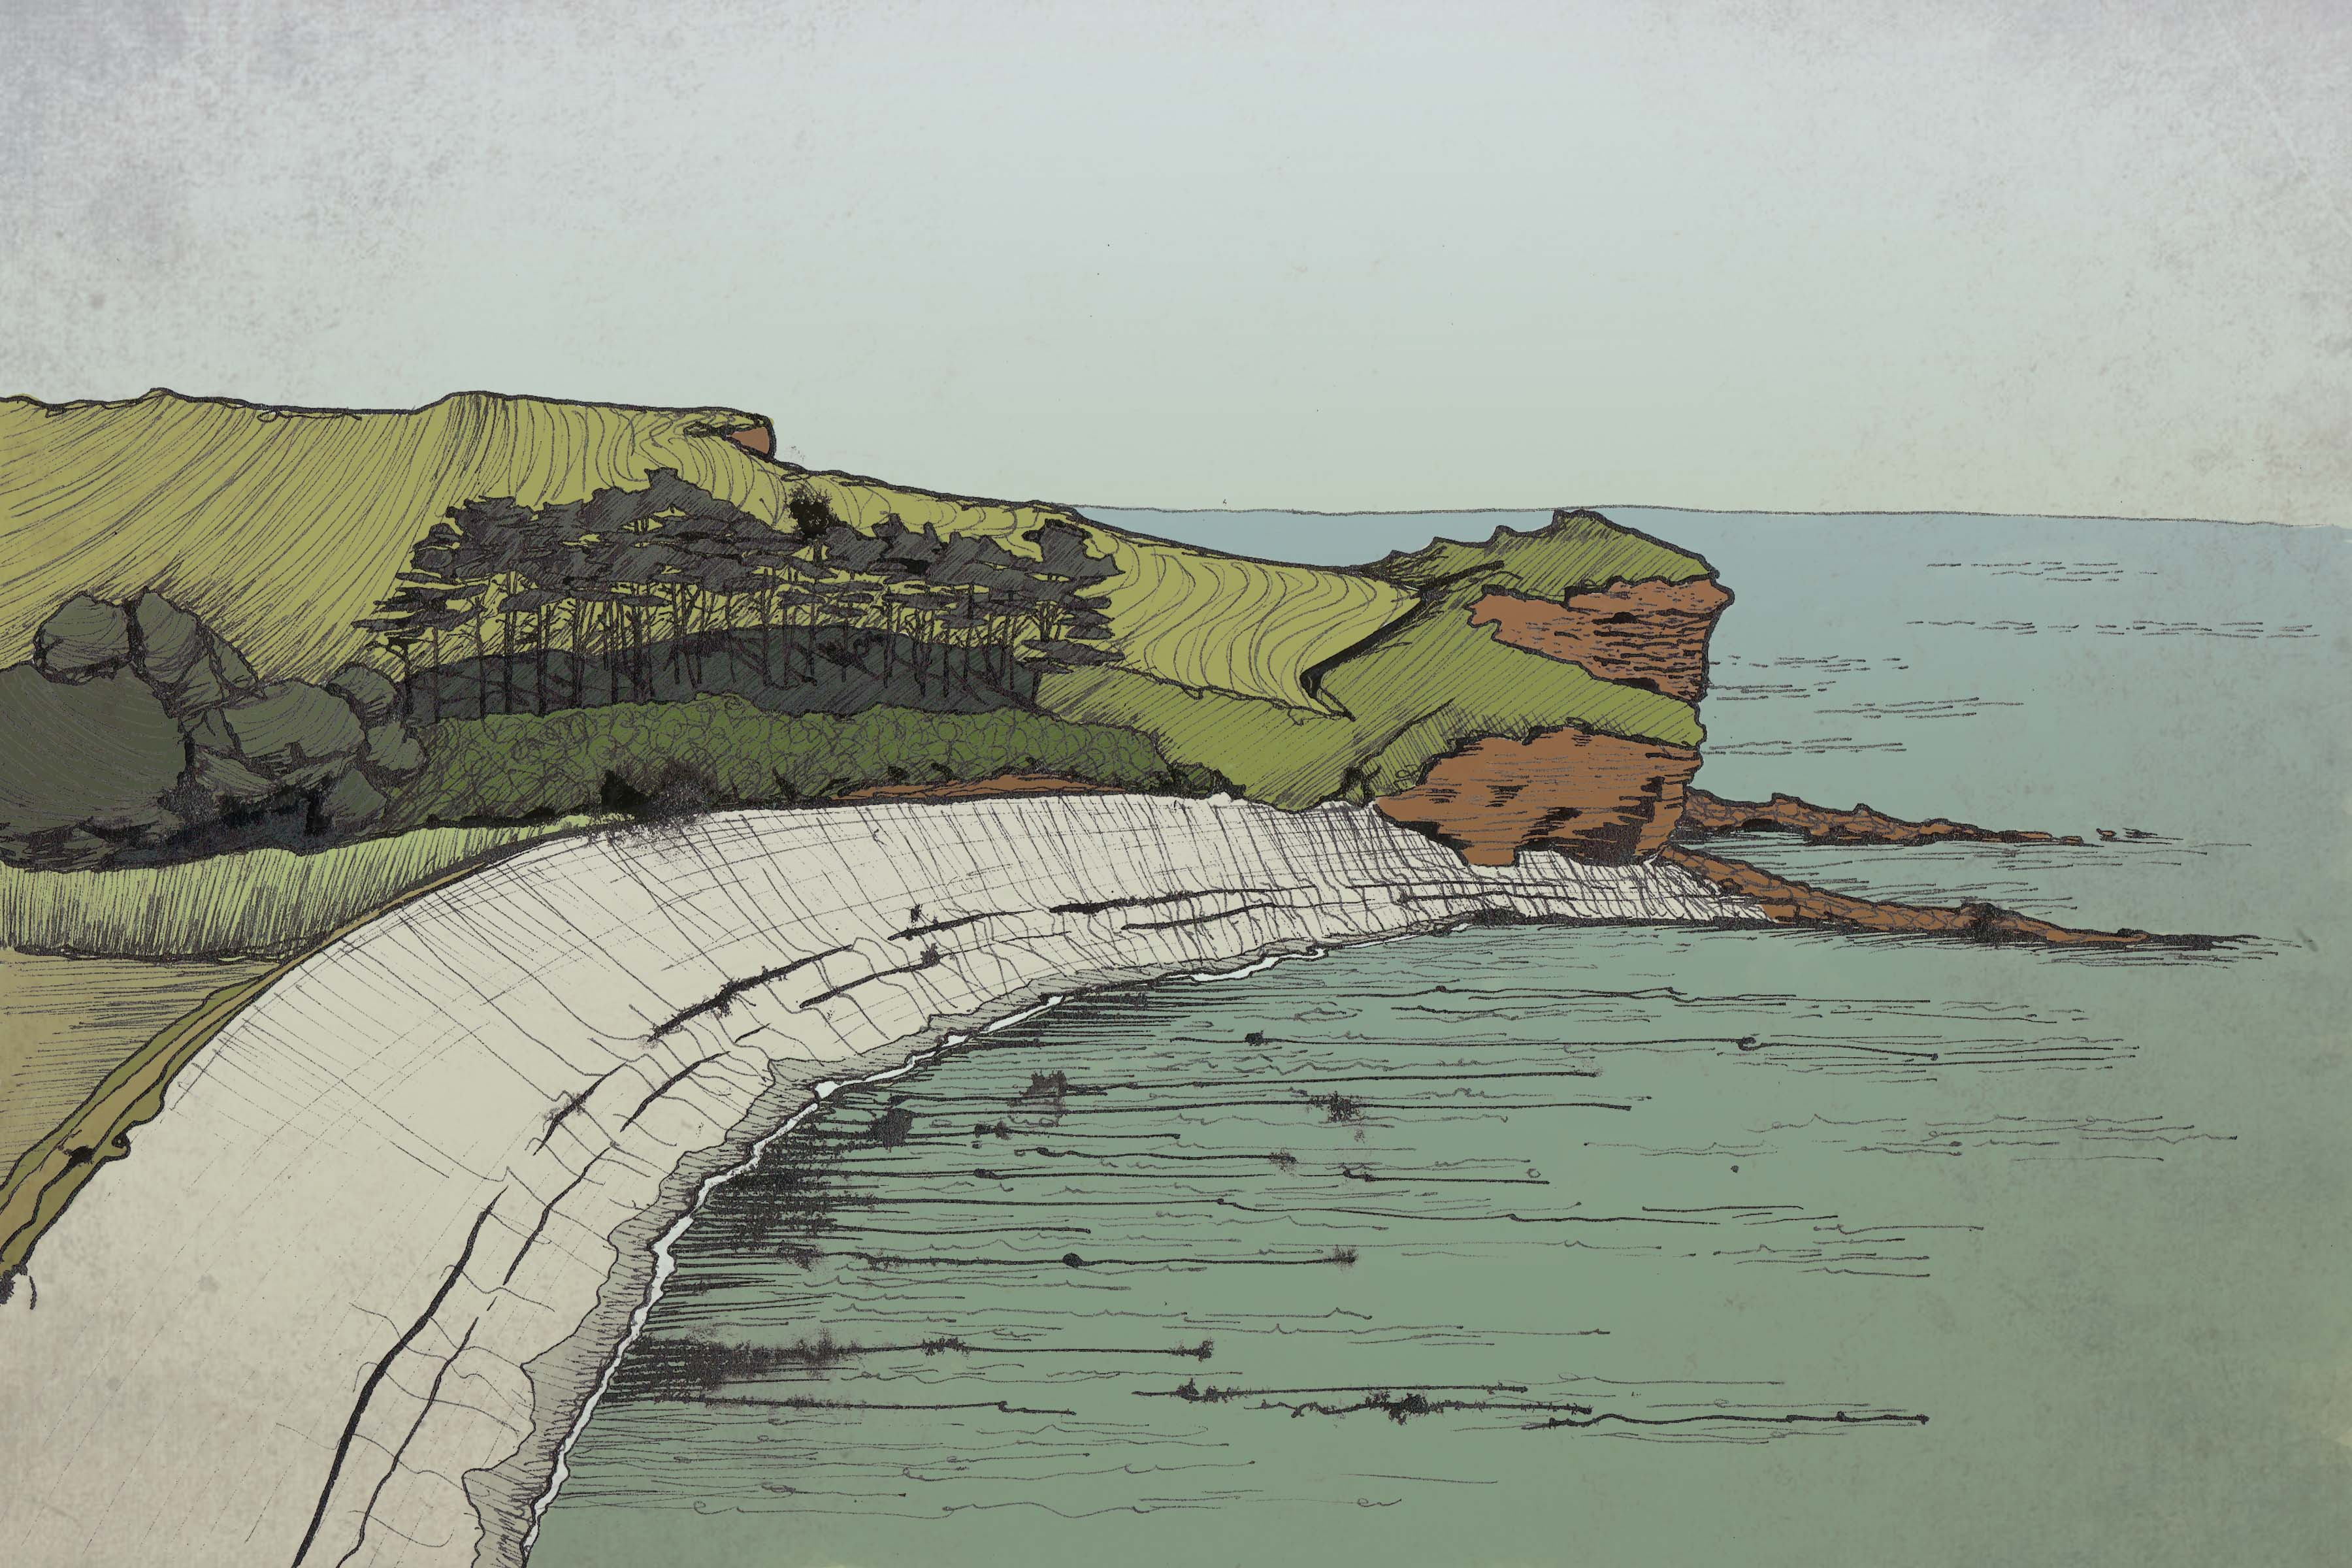 Sketch of beach at Budleigh Salterton by Hannah Foley. All rights reserved (www.owlingabout.co.uk)